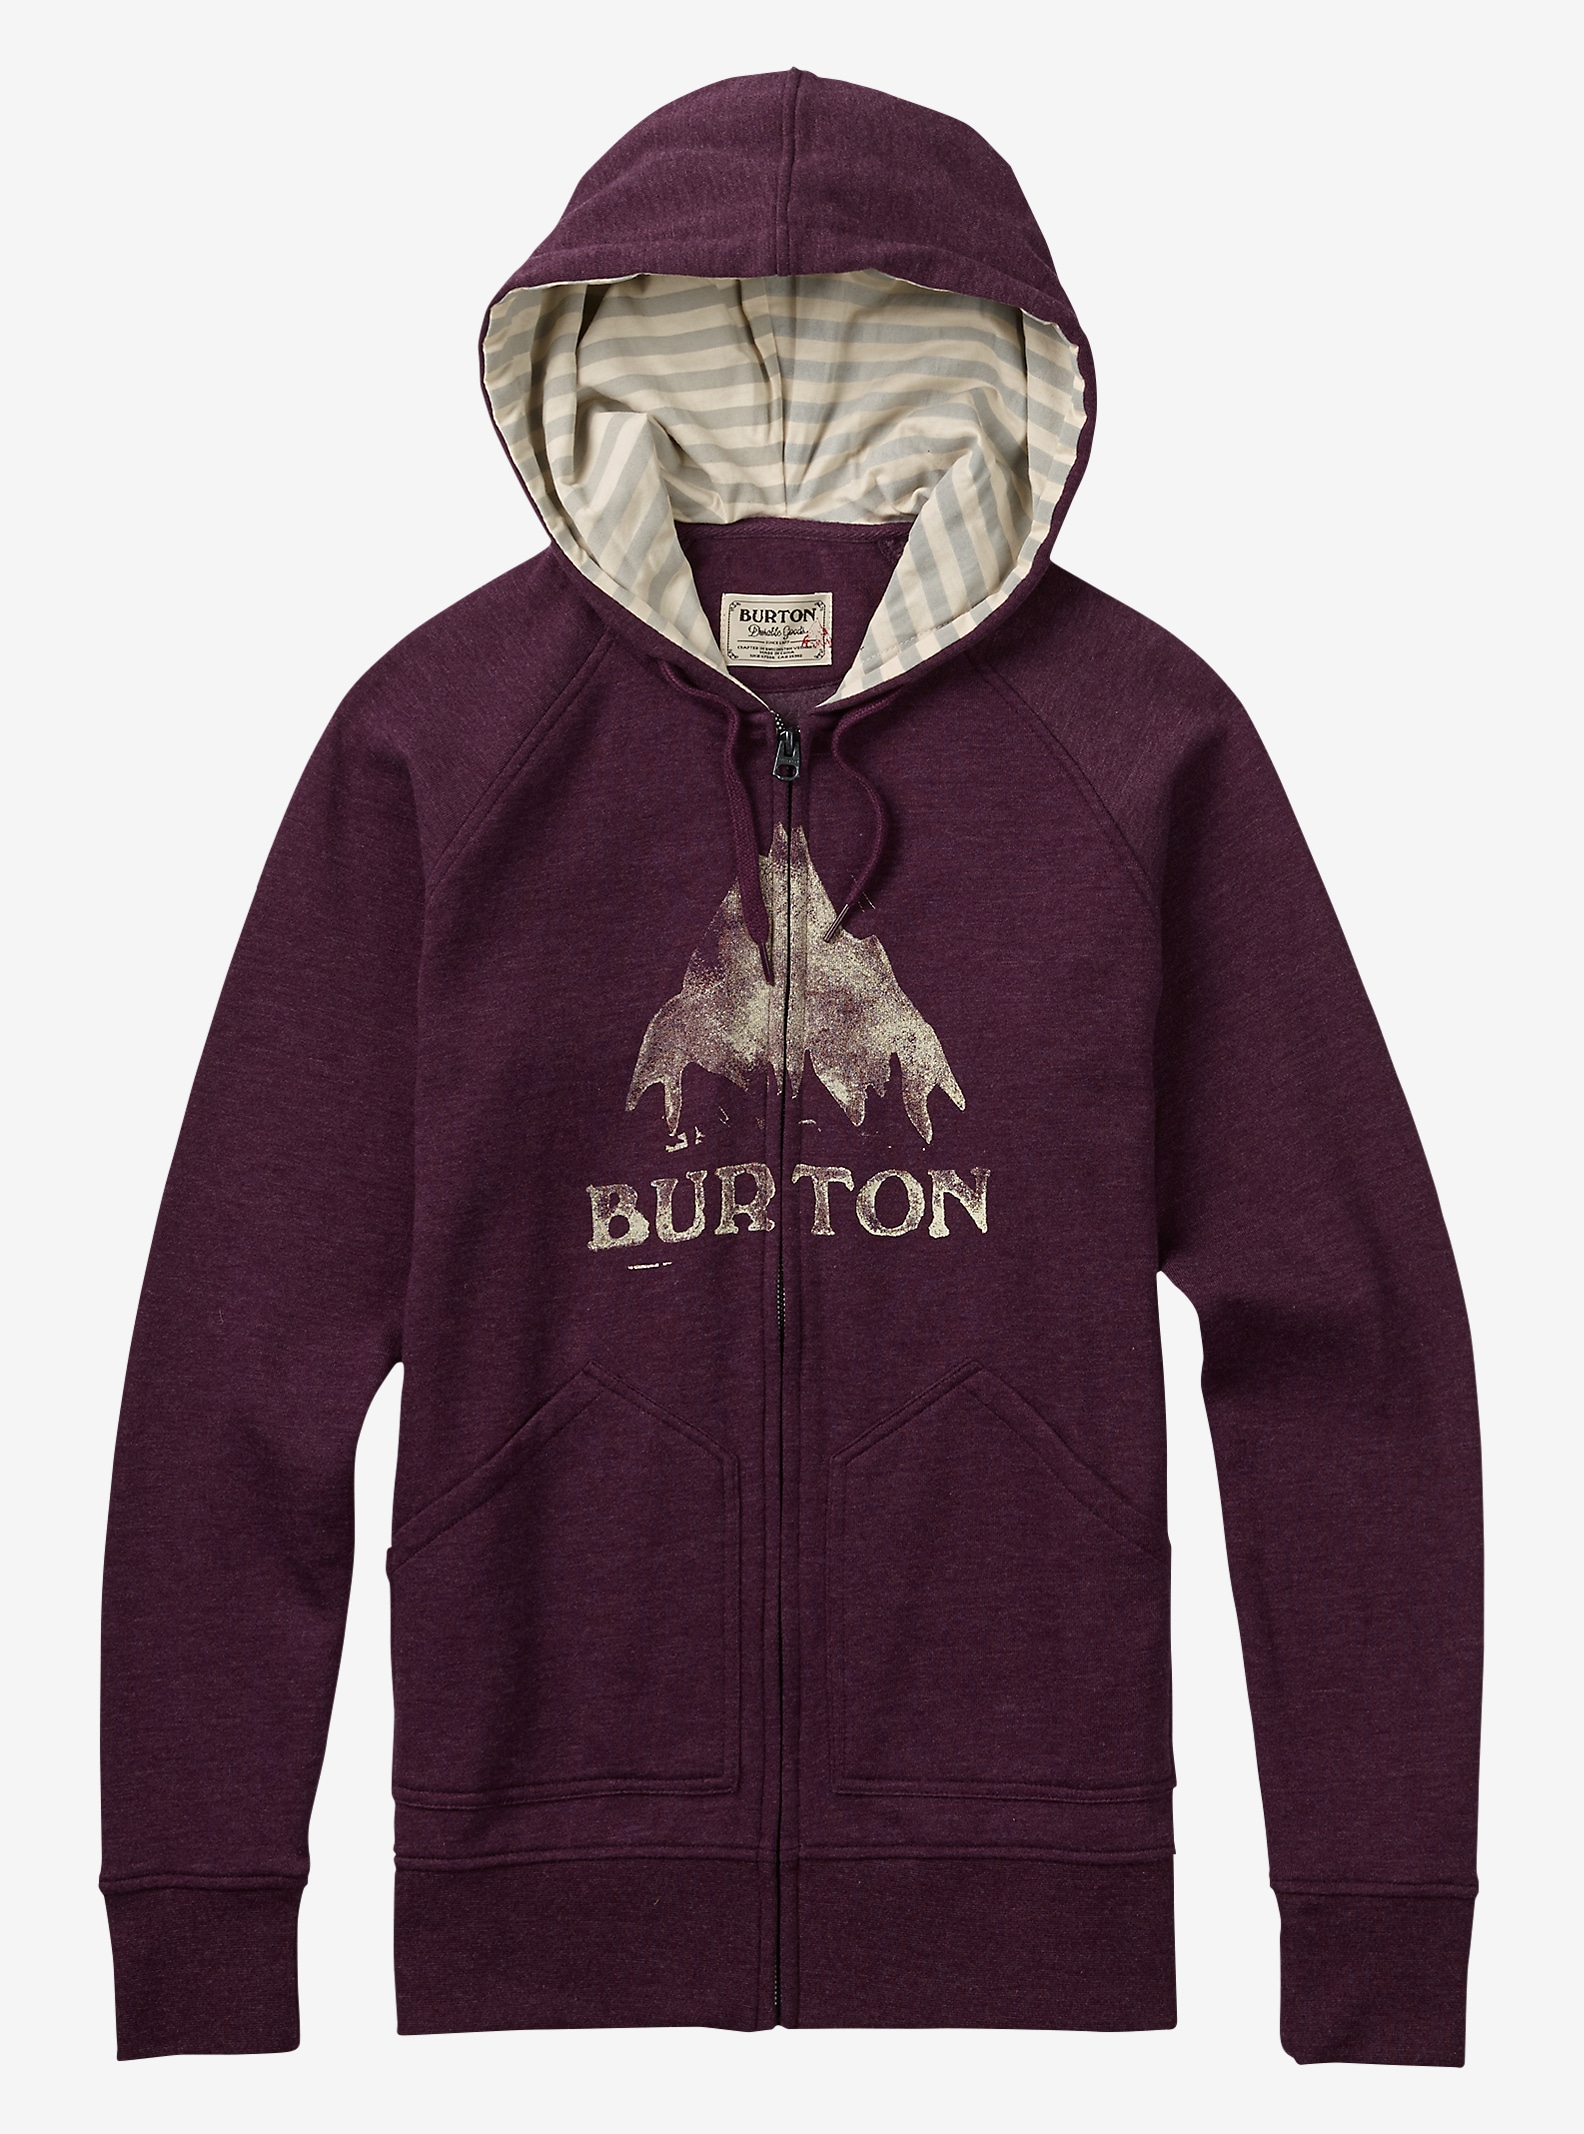 Burton Stamped MTN Full-Zip Hoodie shown in Sangria Heather